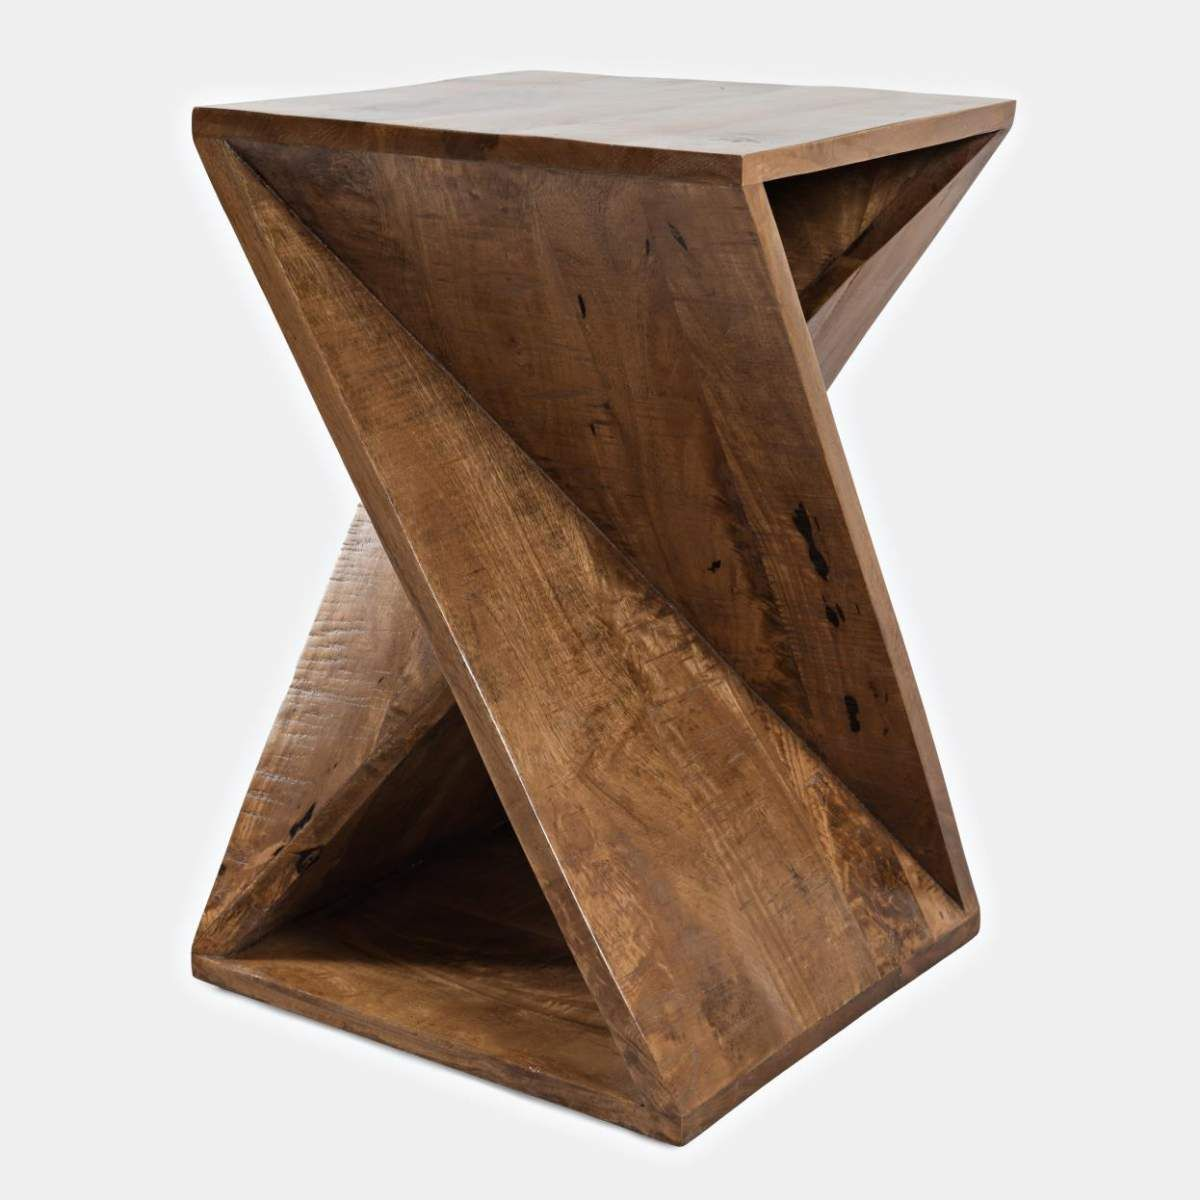 Mango Wood Side Table Trendy Accent Table Jerome S Wood Table Design Side Table Wood Wood Furniture Diy